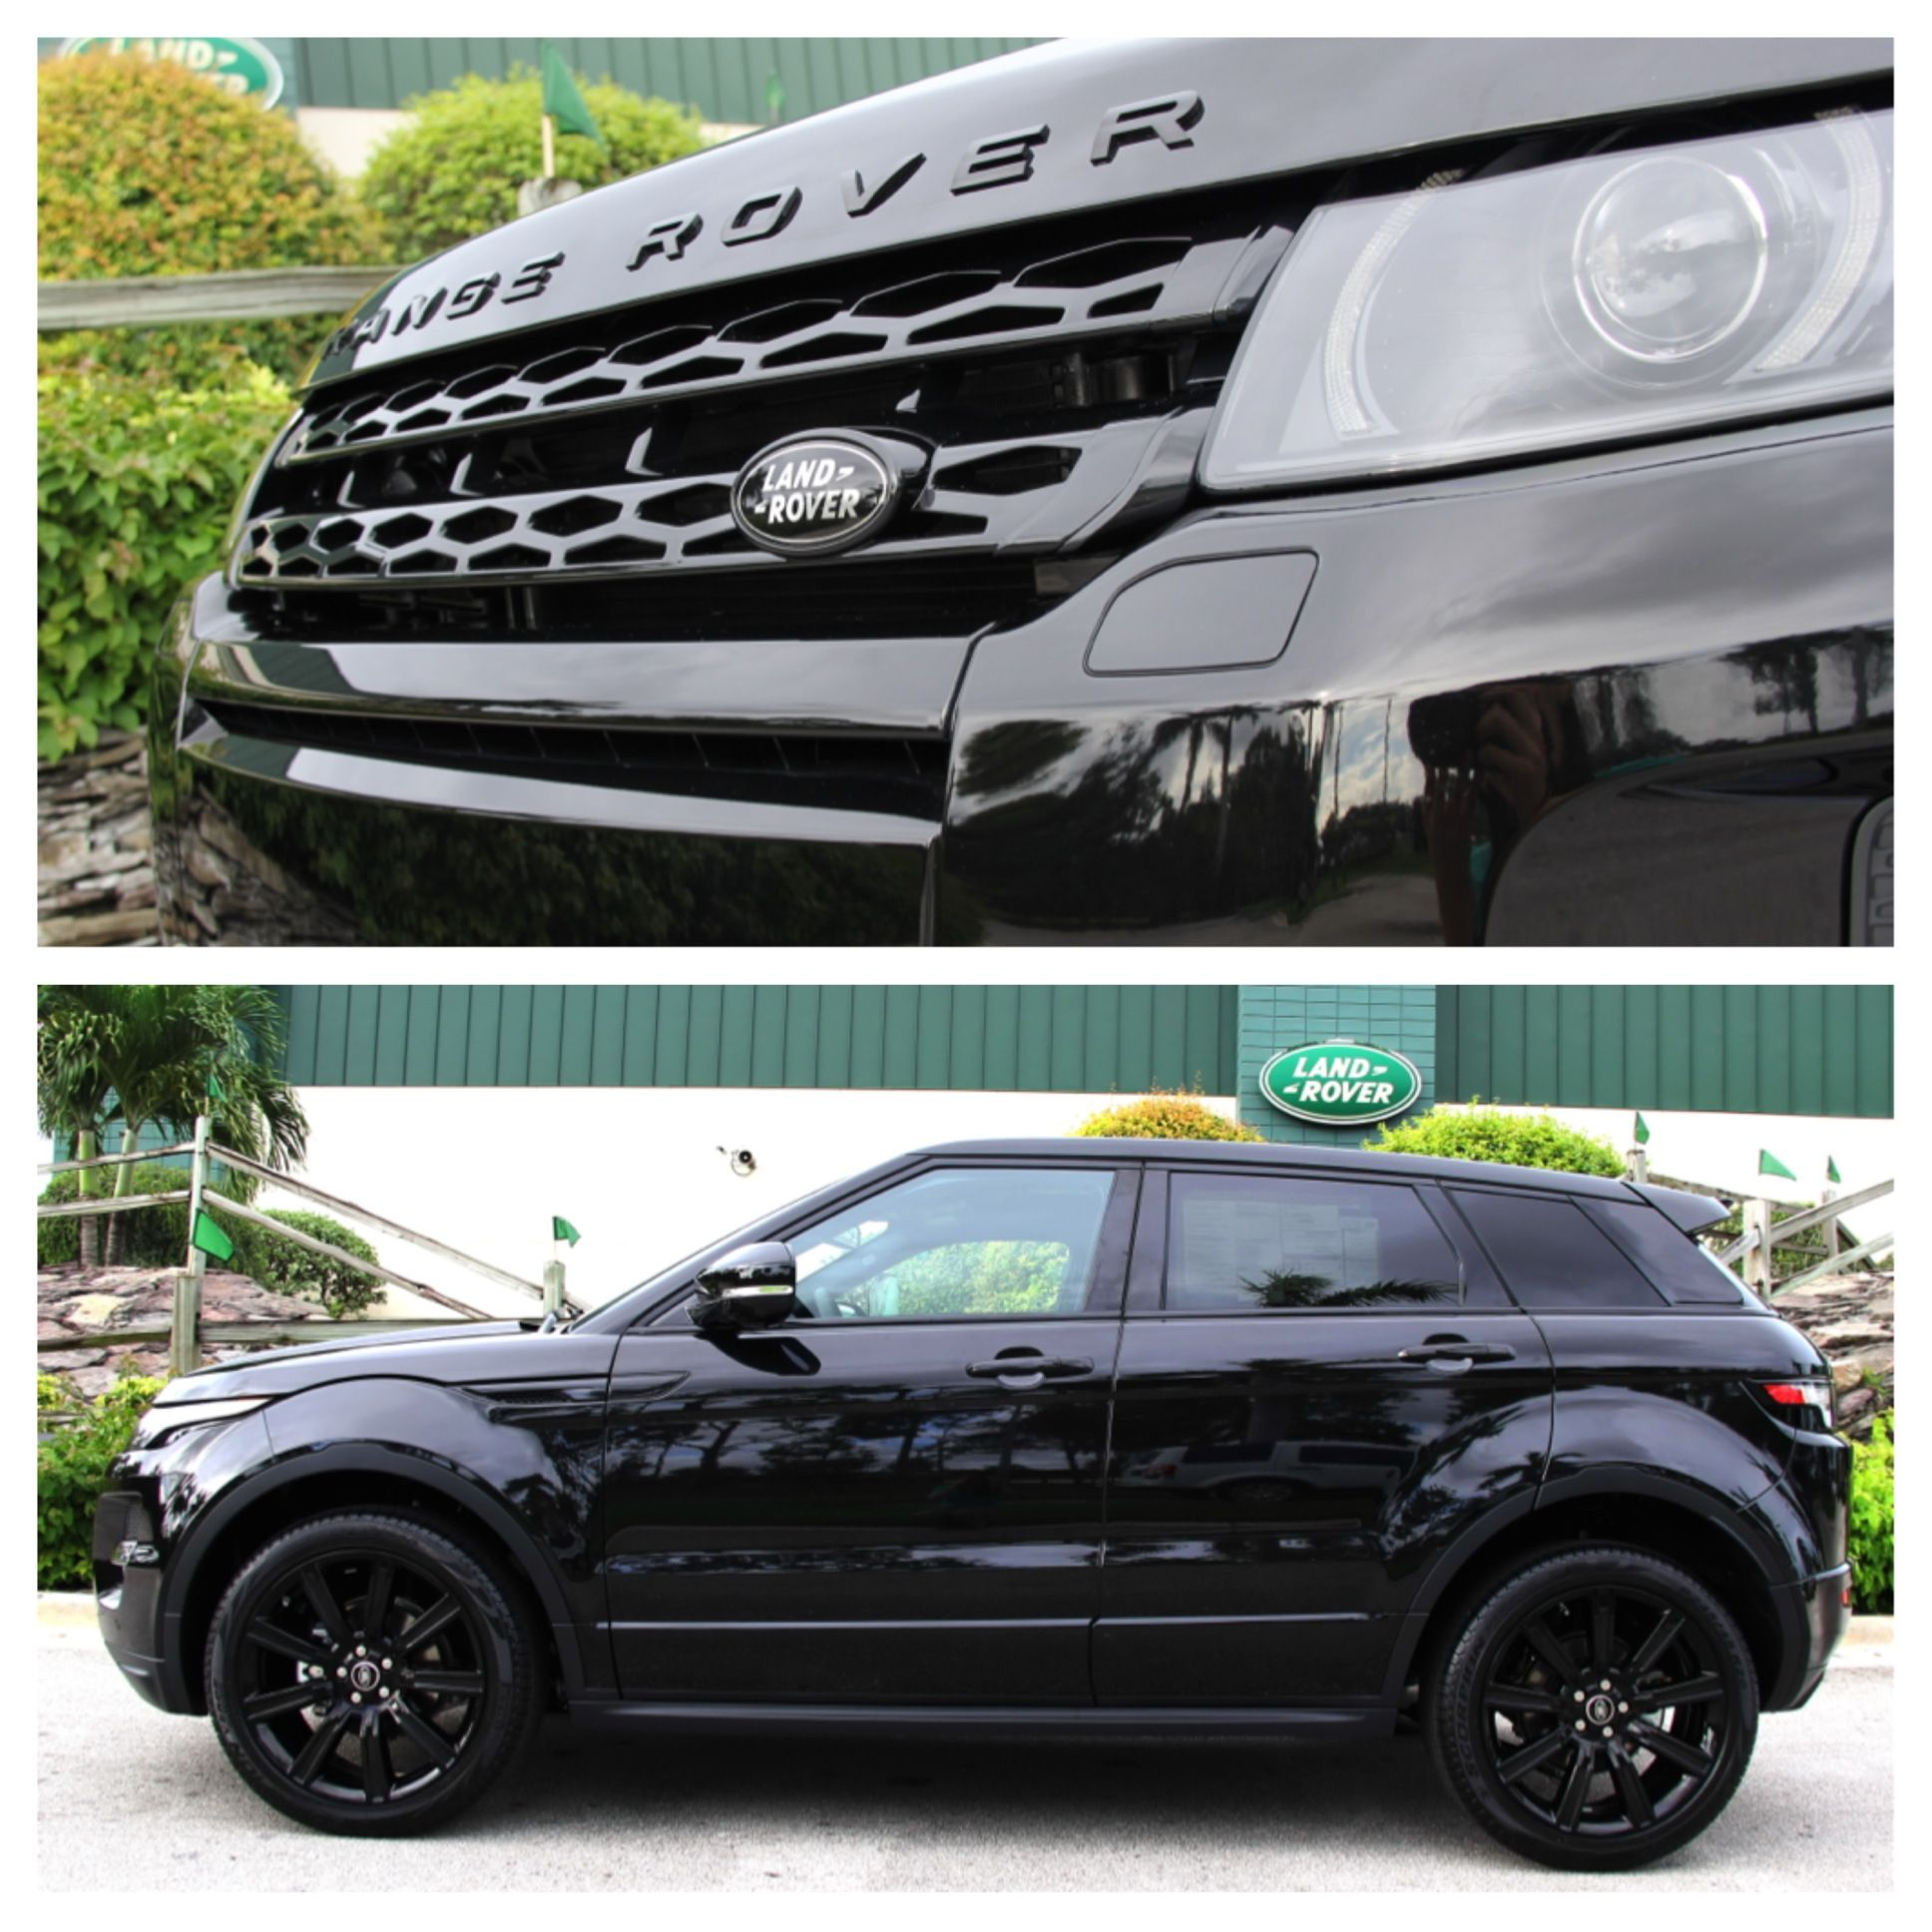 Land Rover Range Rover Evoque Dynamic Black Limited